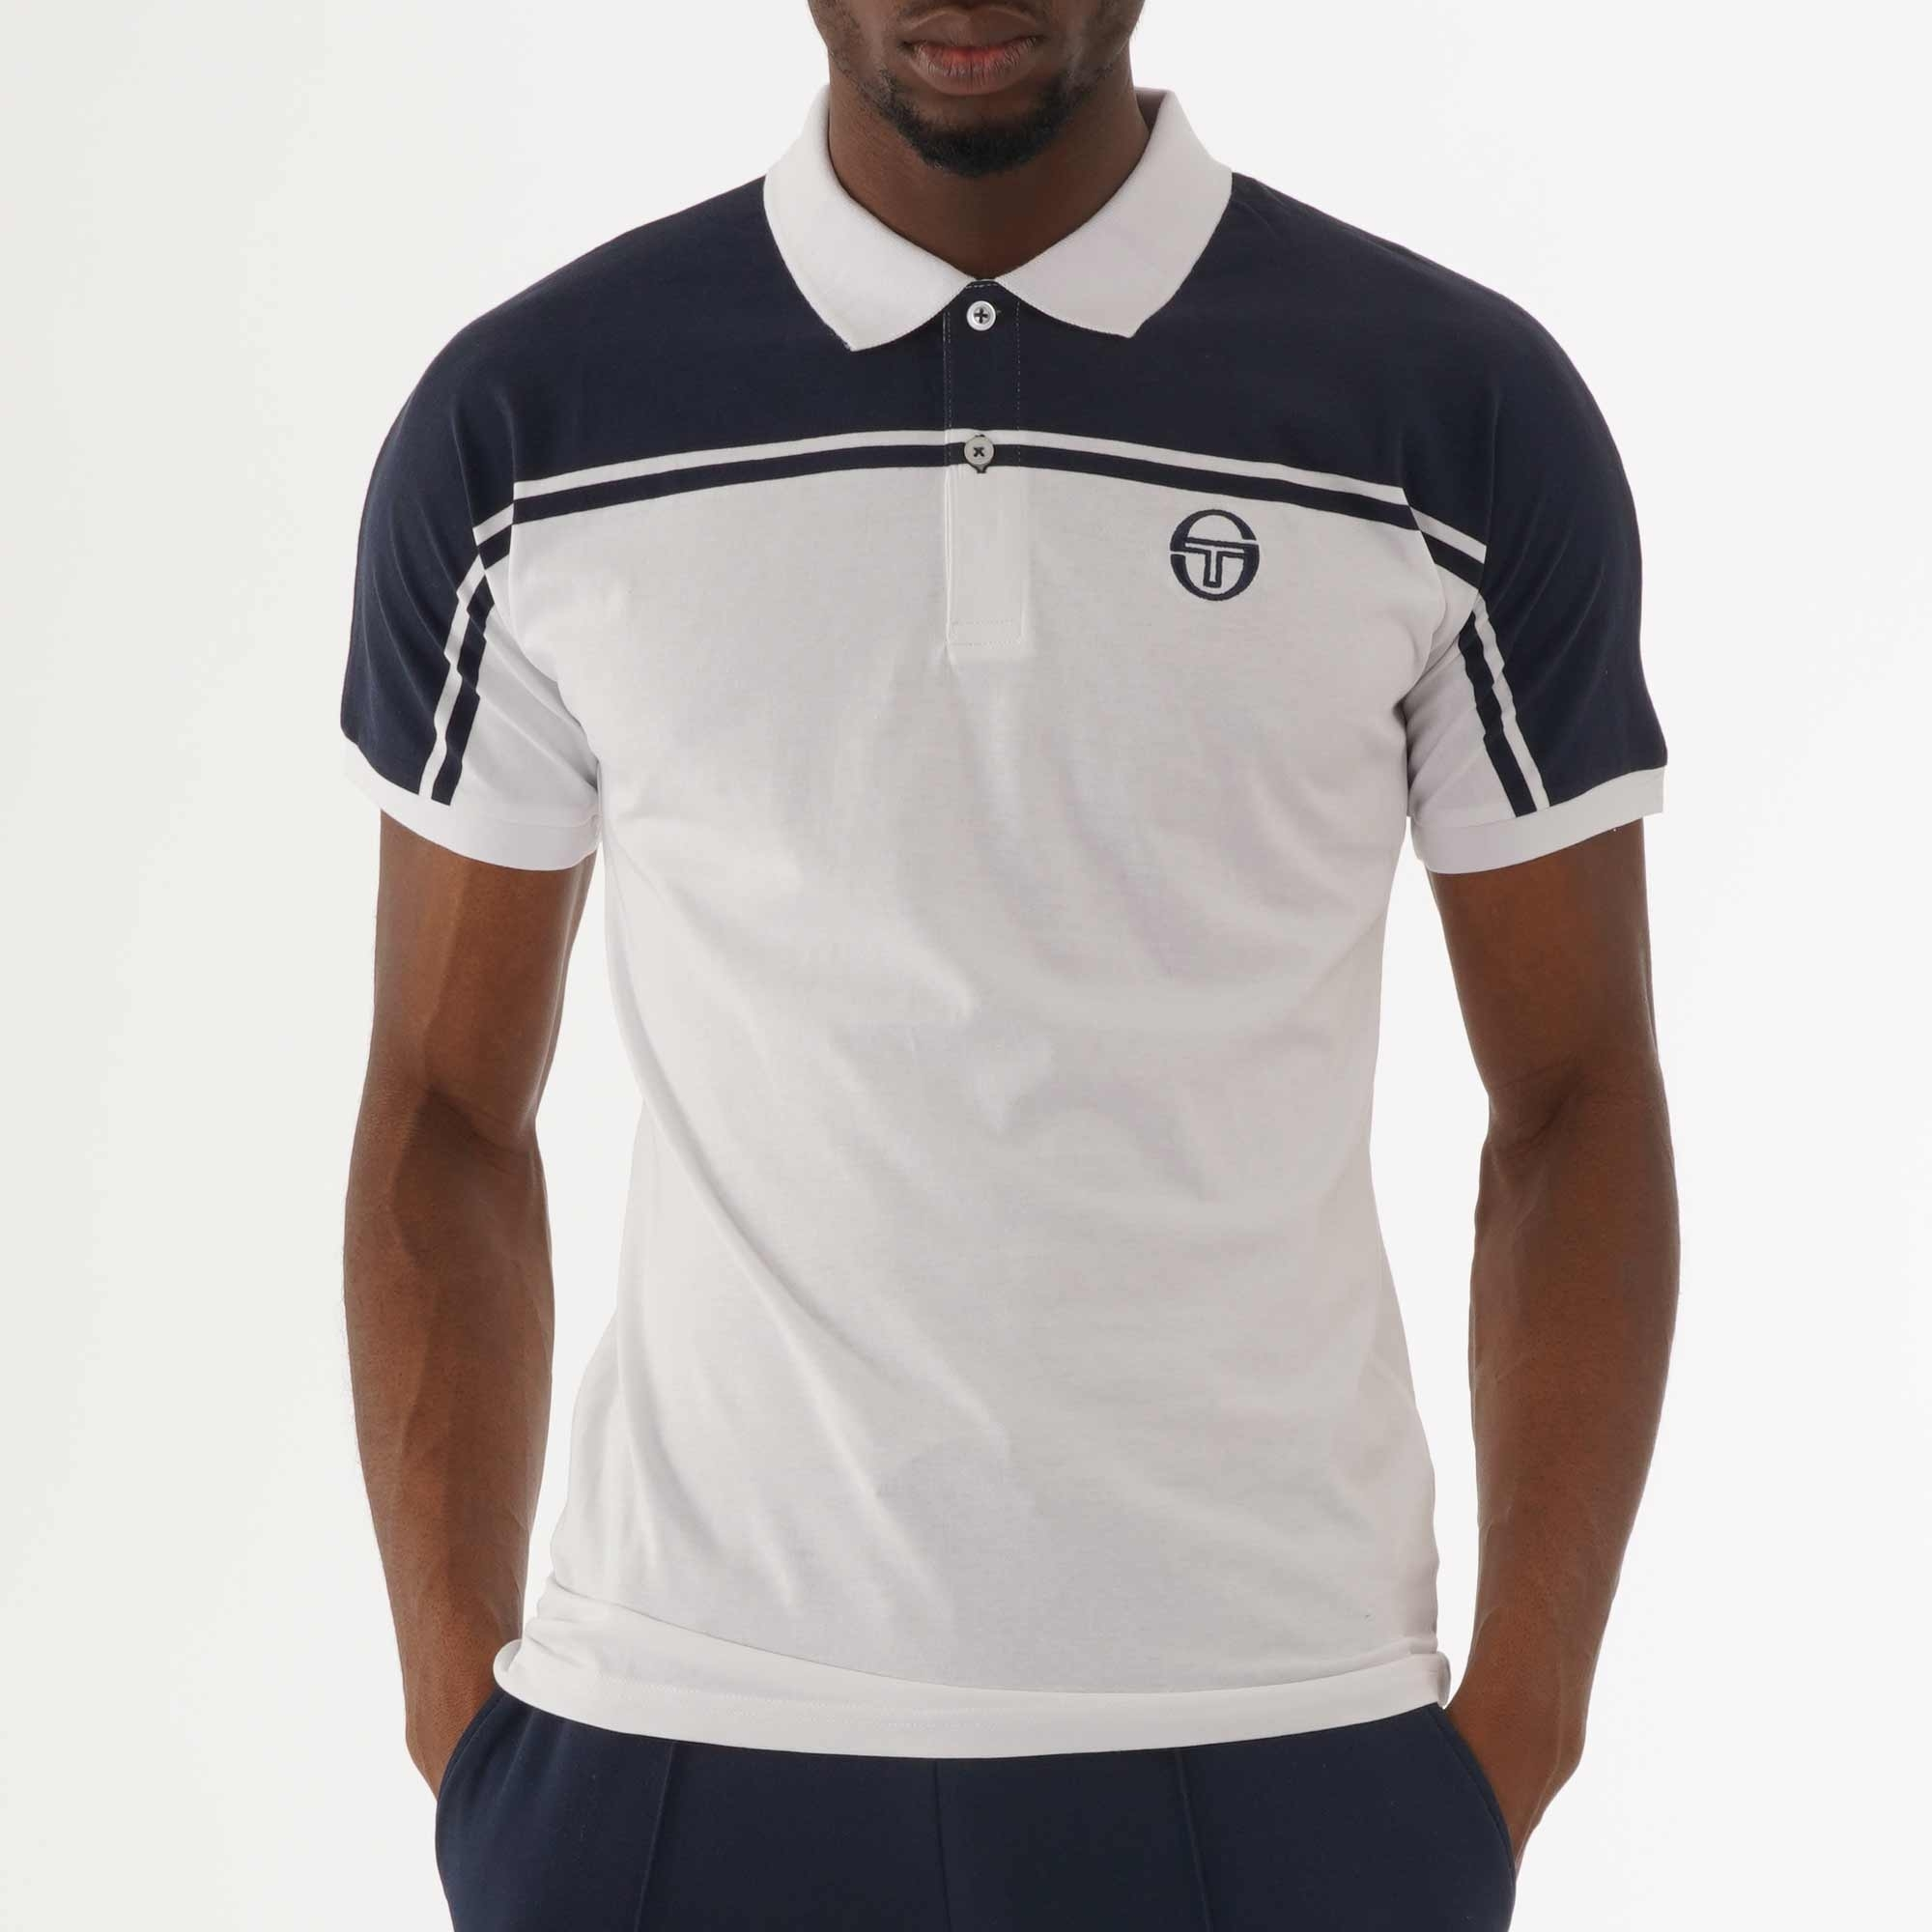 1ace63618 Sergio Tacchini New Young Line Polo Shirt   White & Navy   37177